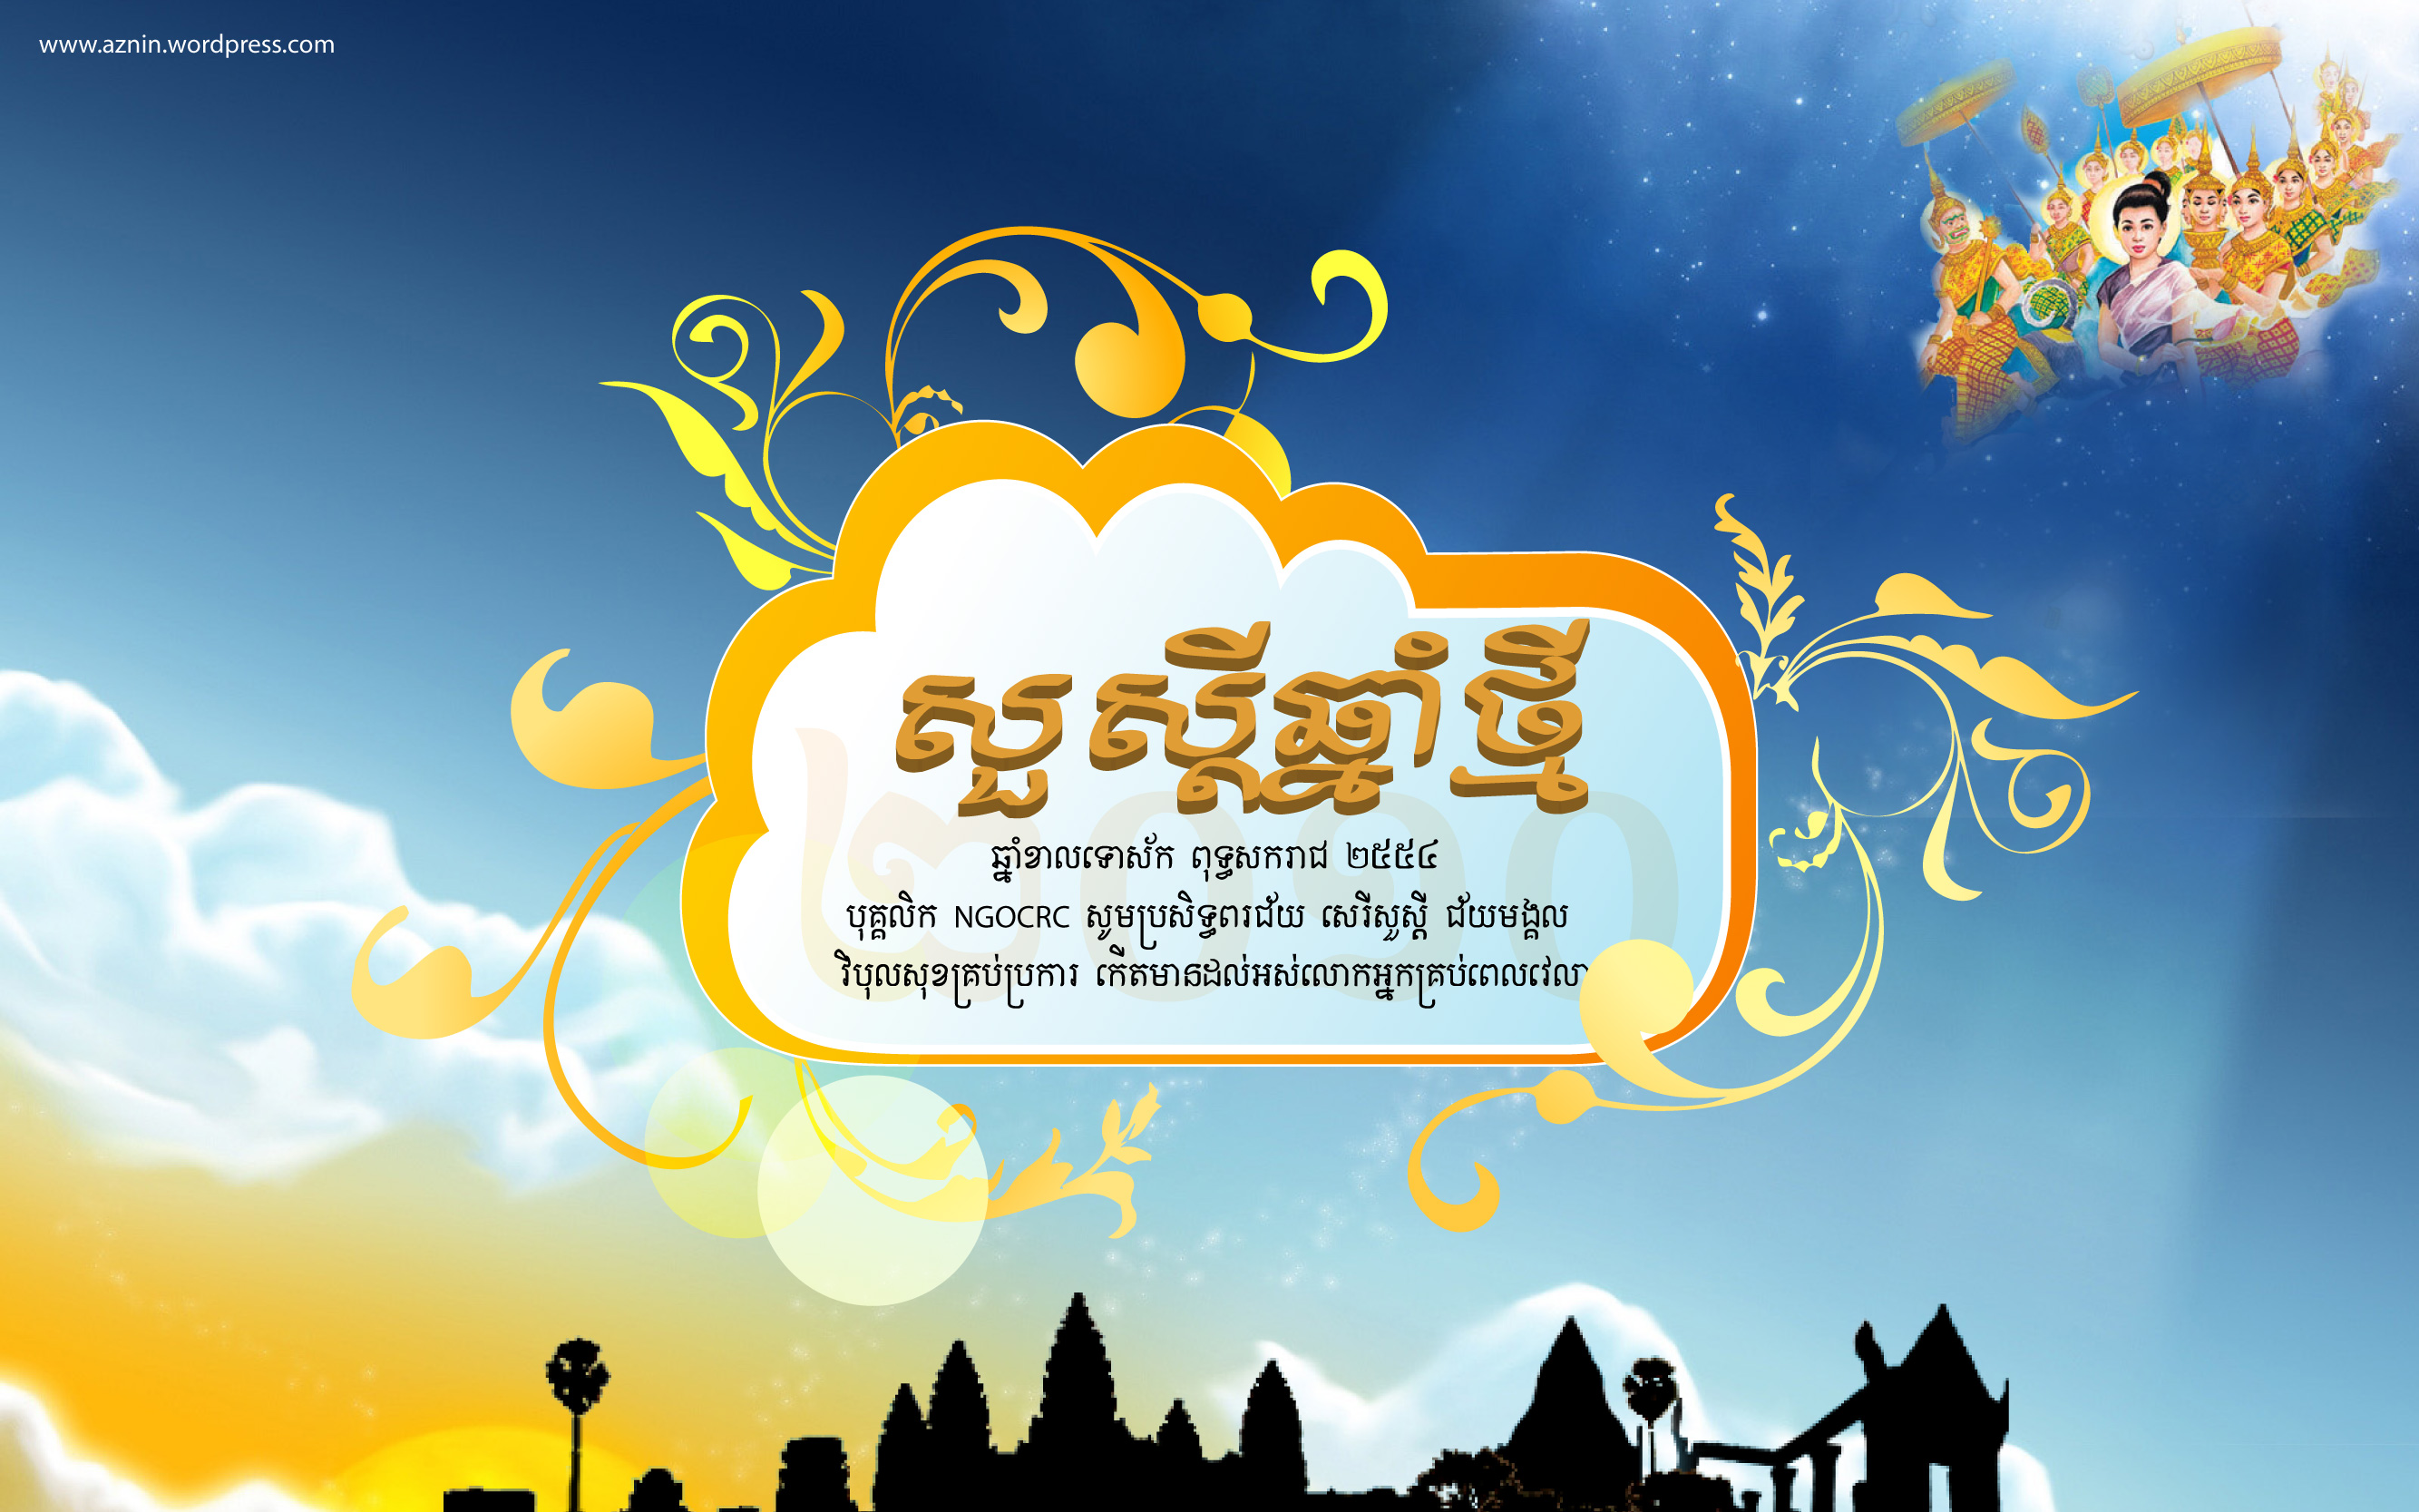 khmer new year essay Cambodian new year, also known as khmer new year, is a three-day public holiday in cambodia in khmer, it is called  chaul chnam thmey, which is translated literally in english as enter the new year'.